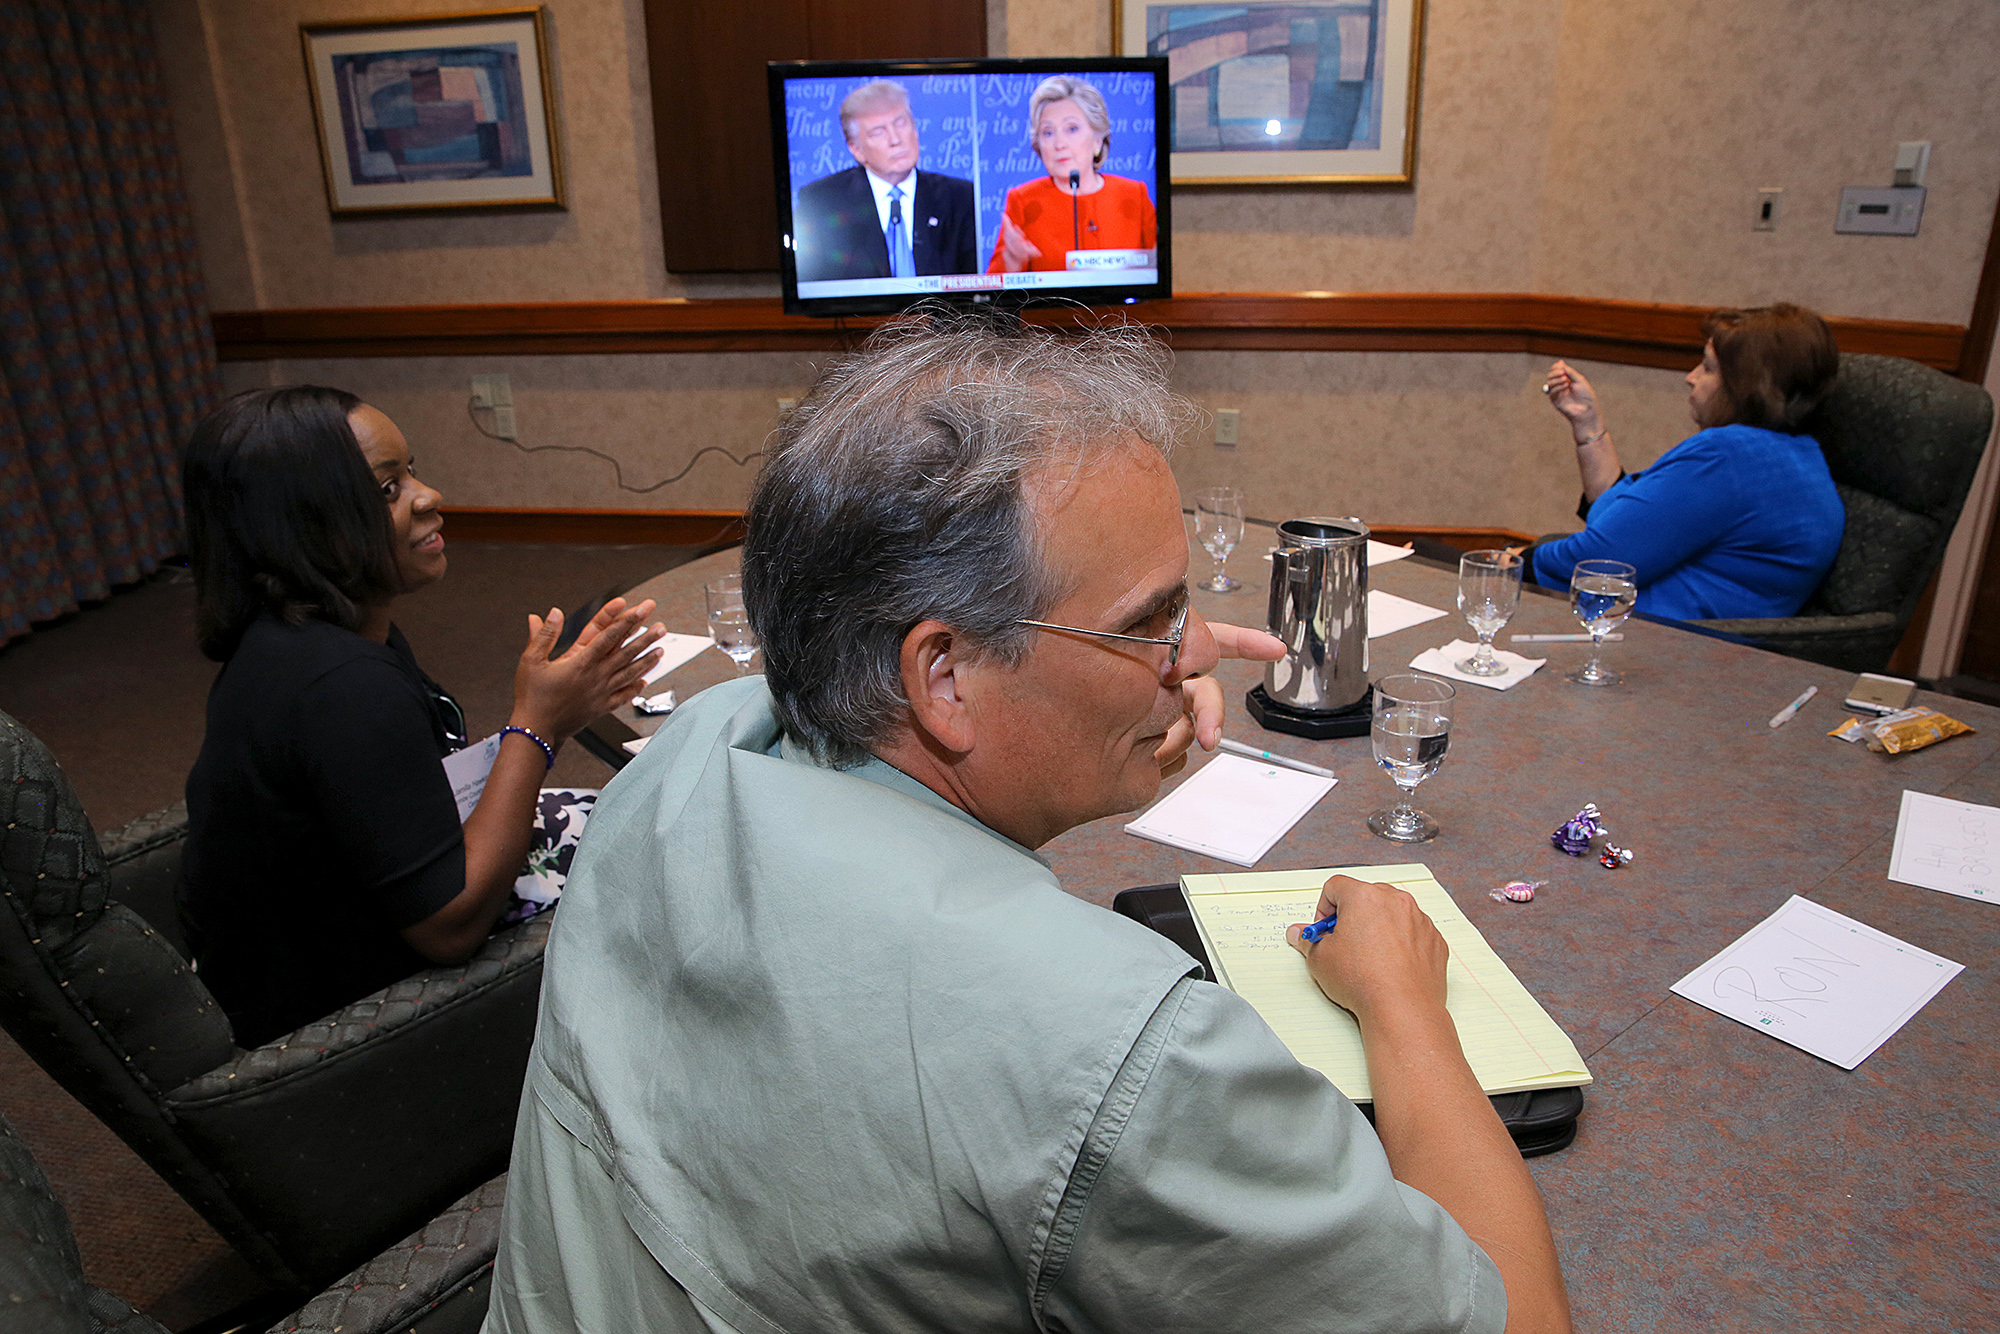 Undecided voters in the presidential election, from left Jamilla Hawkins, Ron Townley and Cindy Adair. MUST CREDIT: Ted Richardson for The Washington Post.